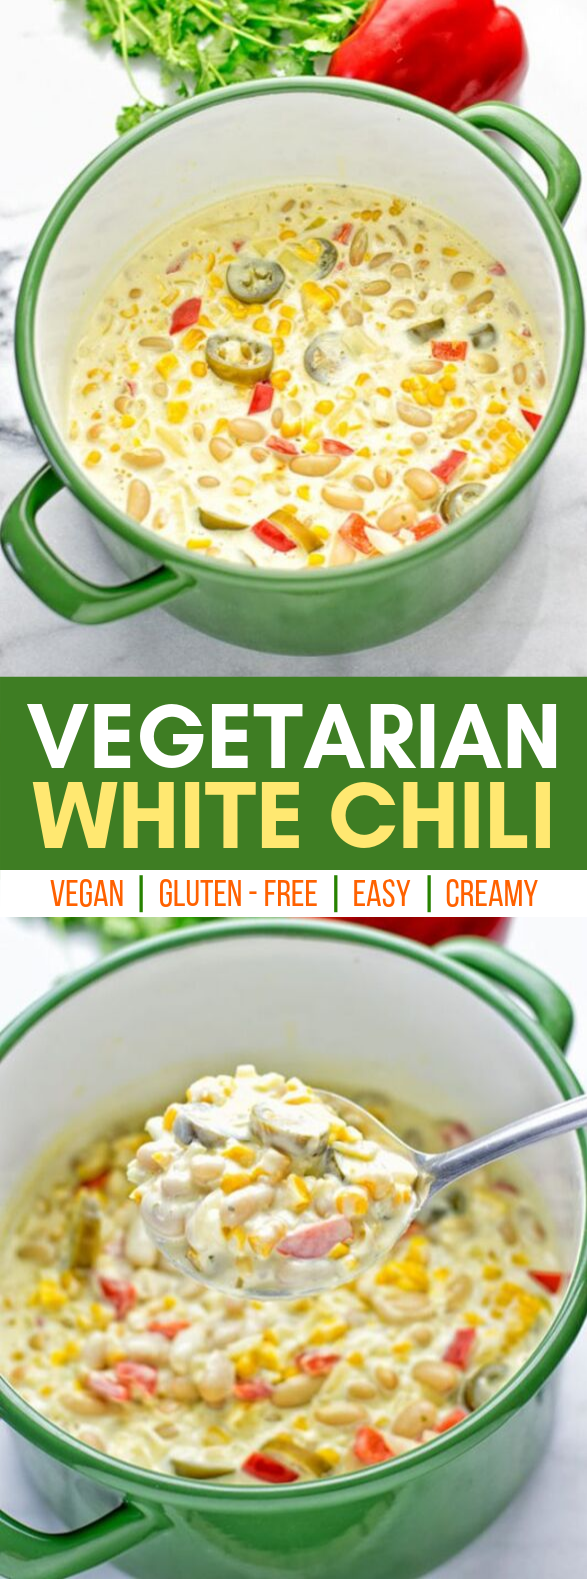 VEGETARIAN WHITE CHILI #vegan #glutenfree